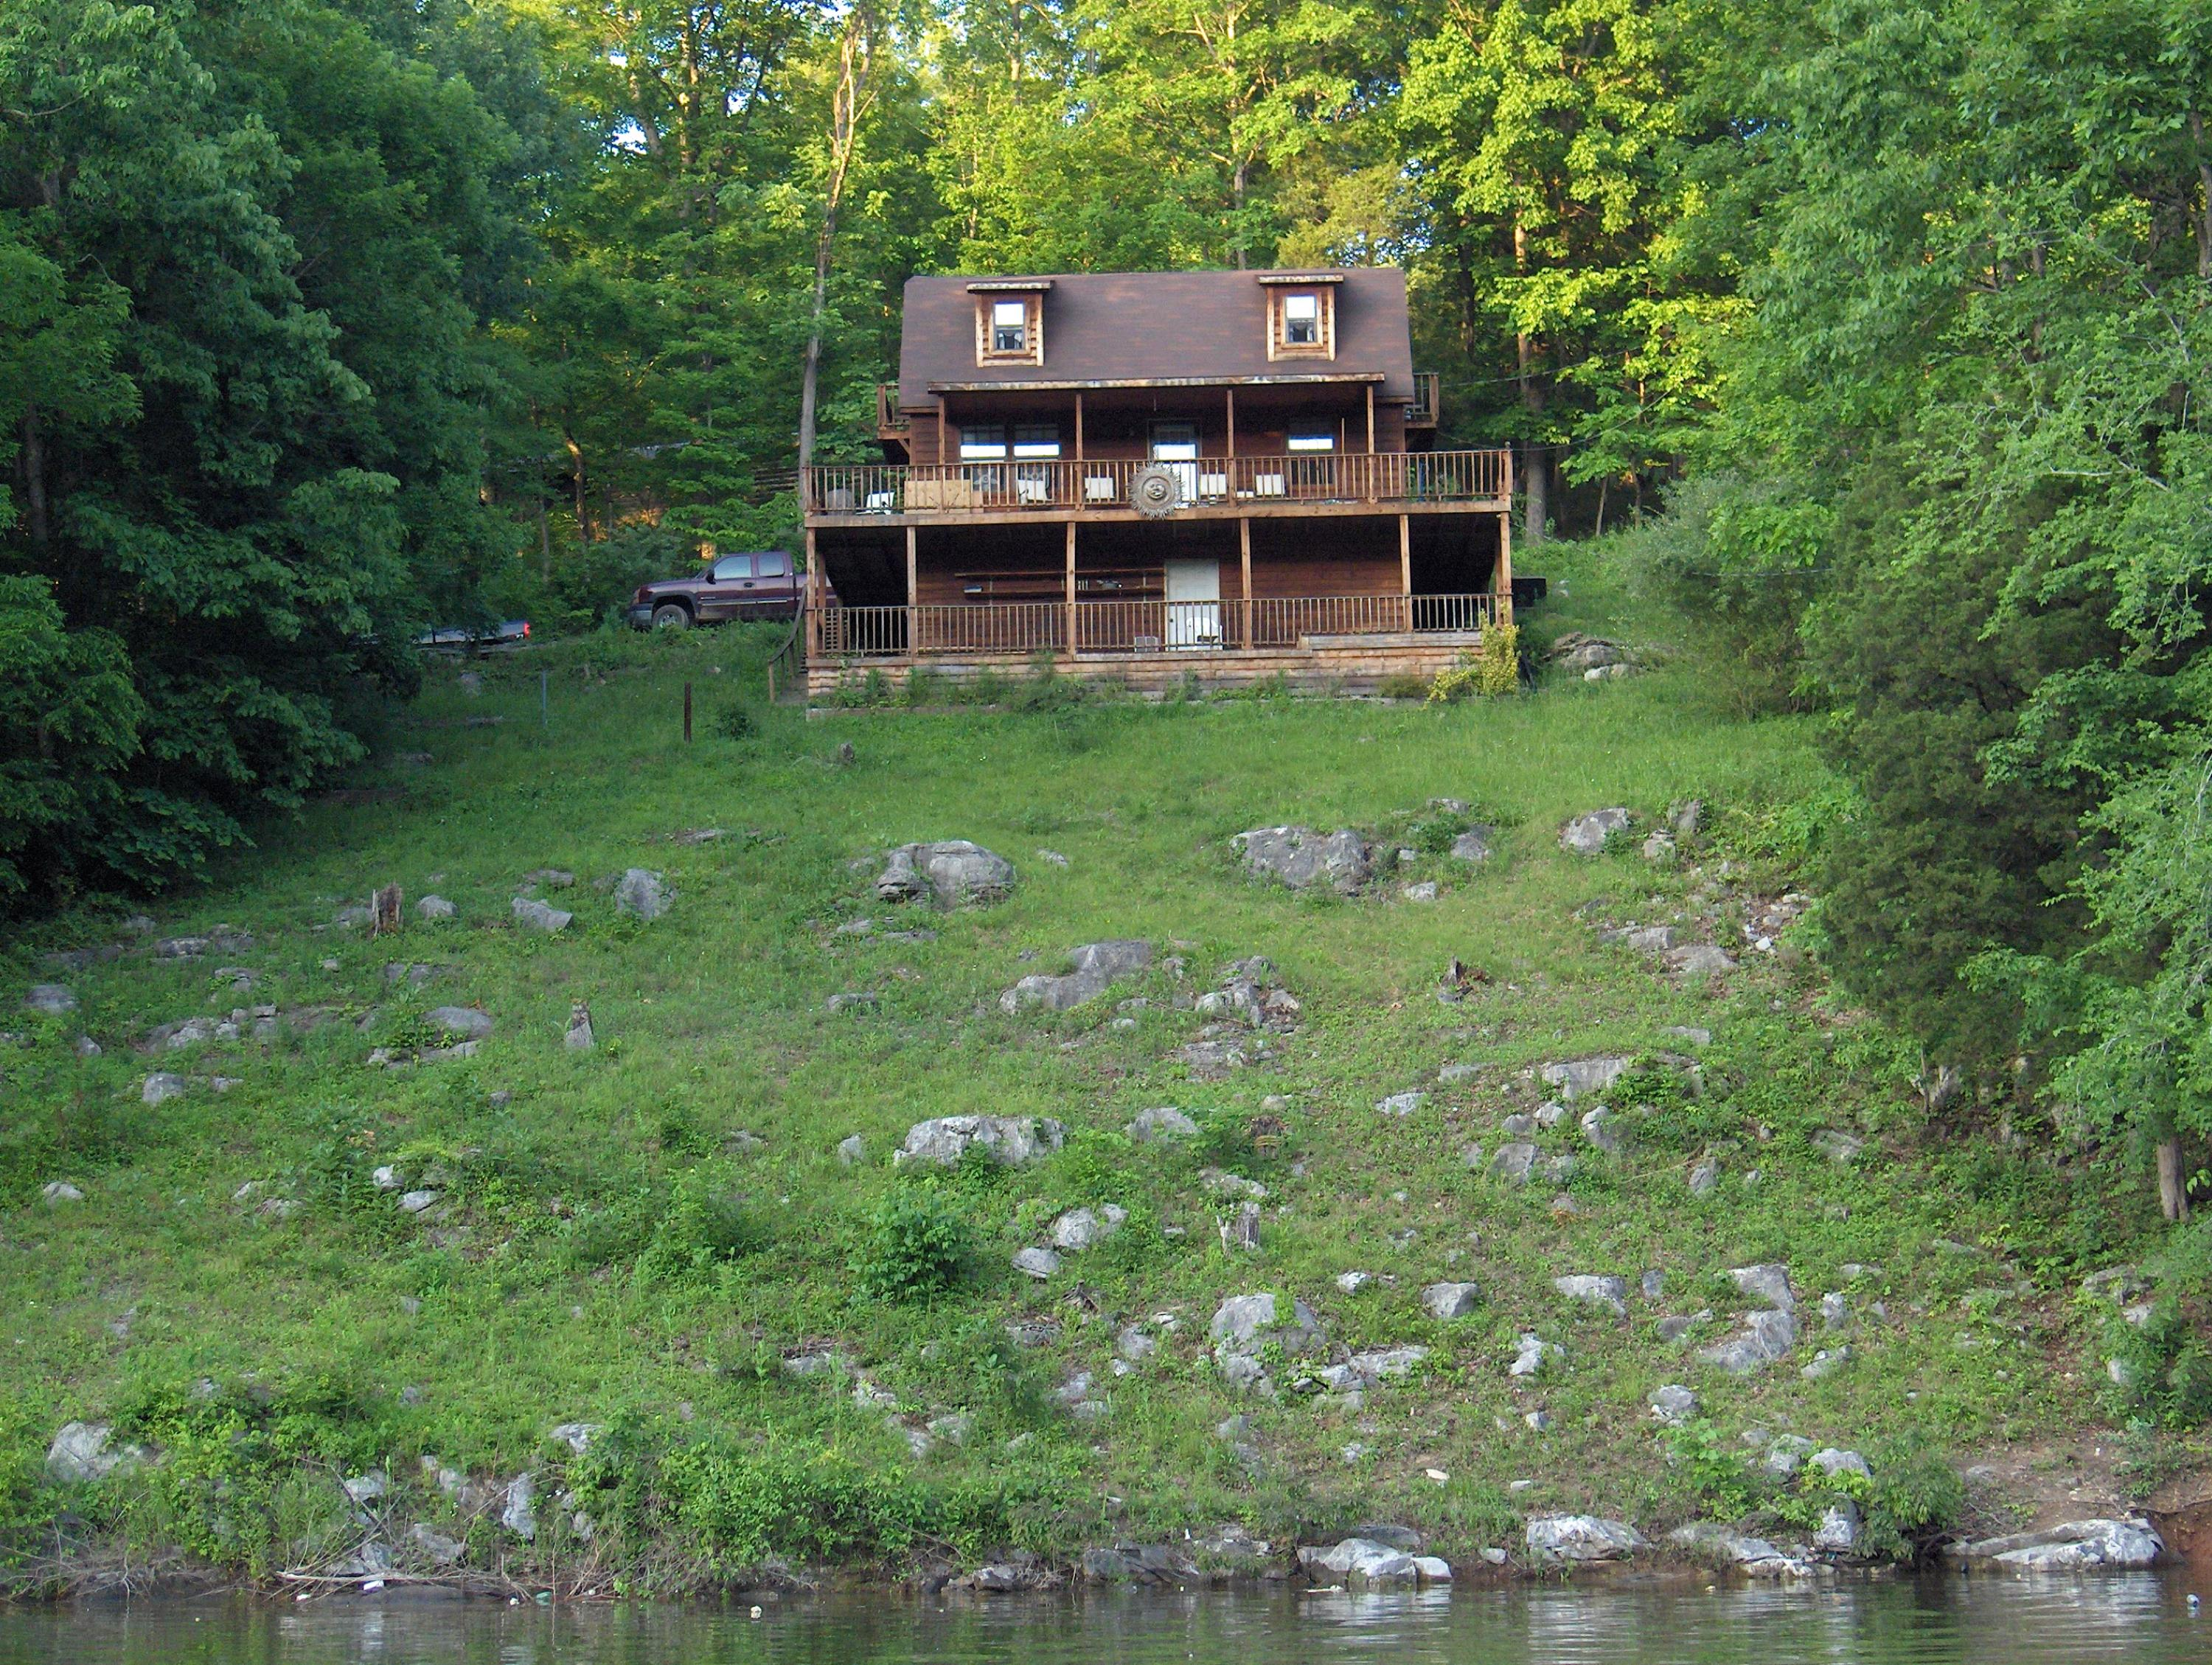 162 Lake Hollow Rd: